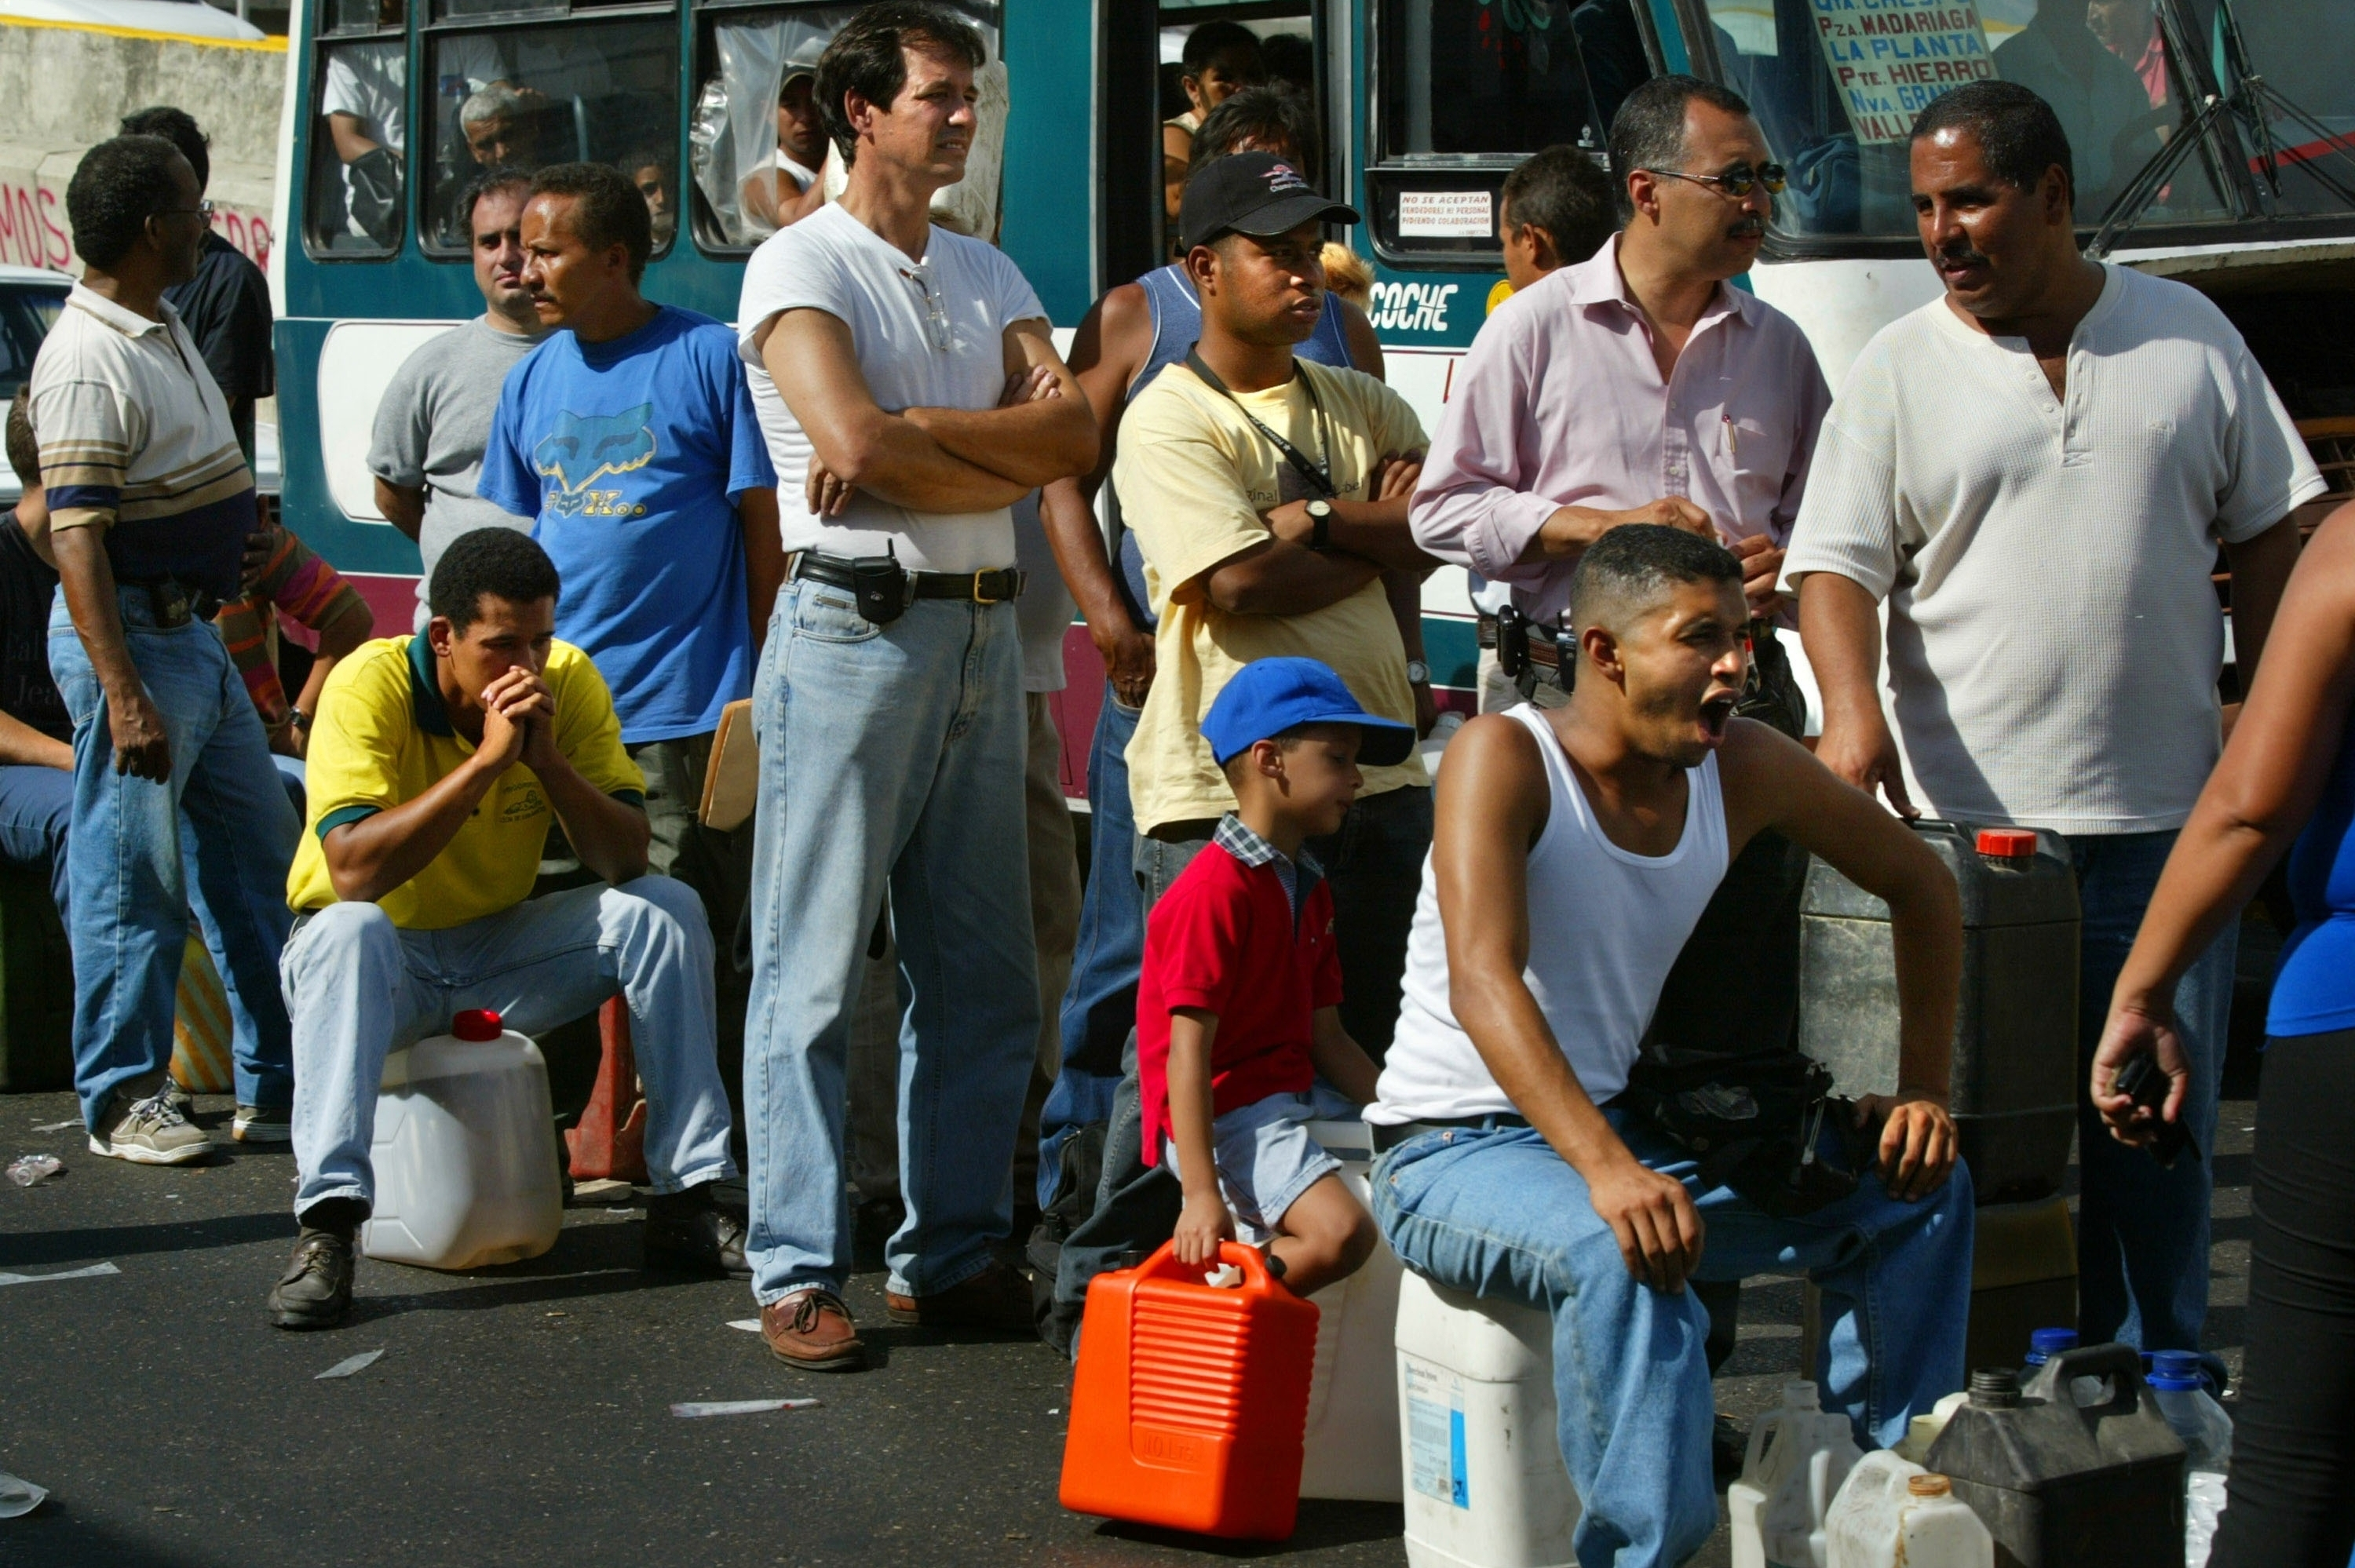 Venezuelans wait for hours in gas lines in Caracas on Dec. 21, 2002, the 20th day of a general strike protesting Chavez's rule. The strike temporarily crippled Venezuela's vital oil industry.